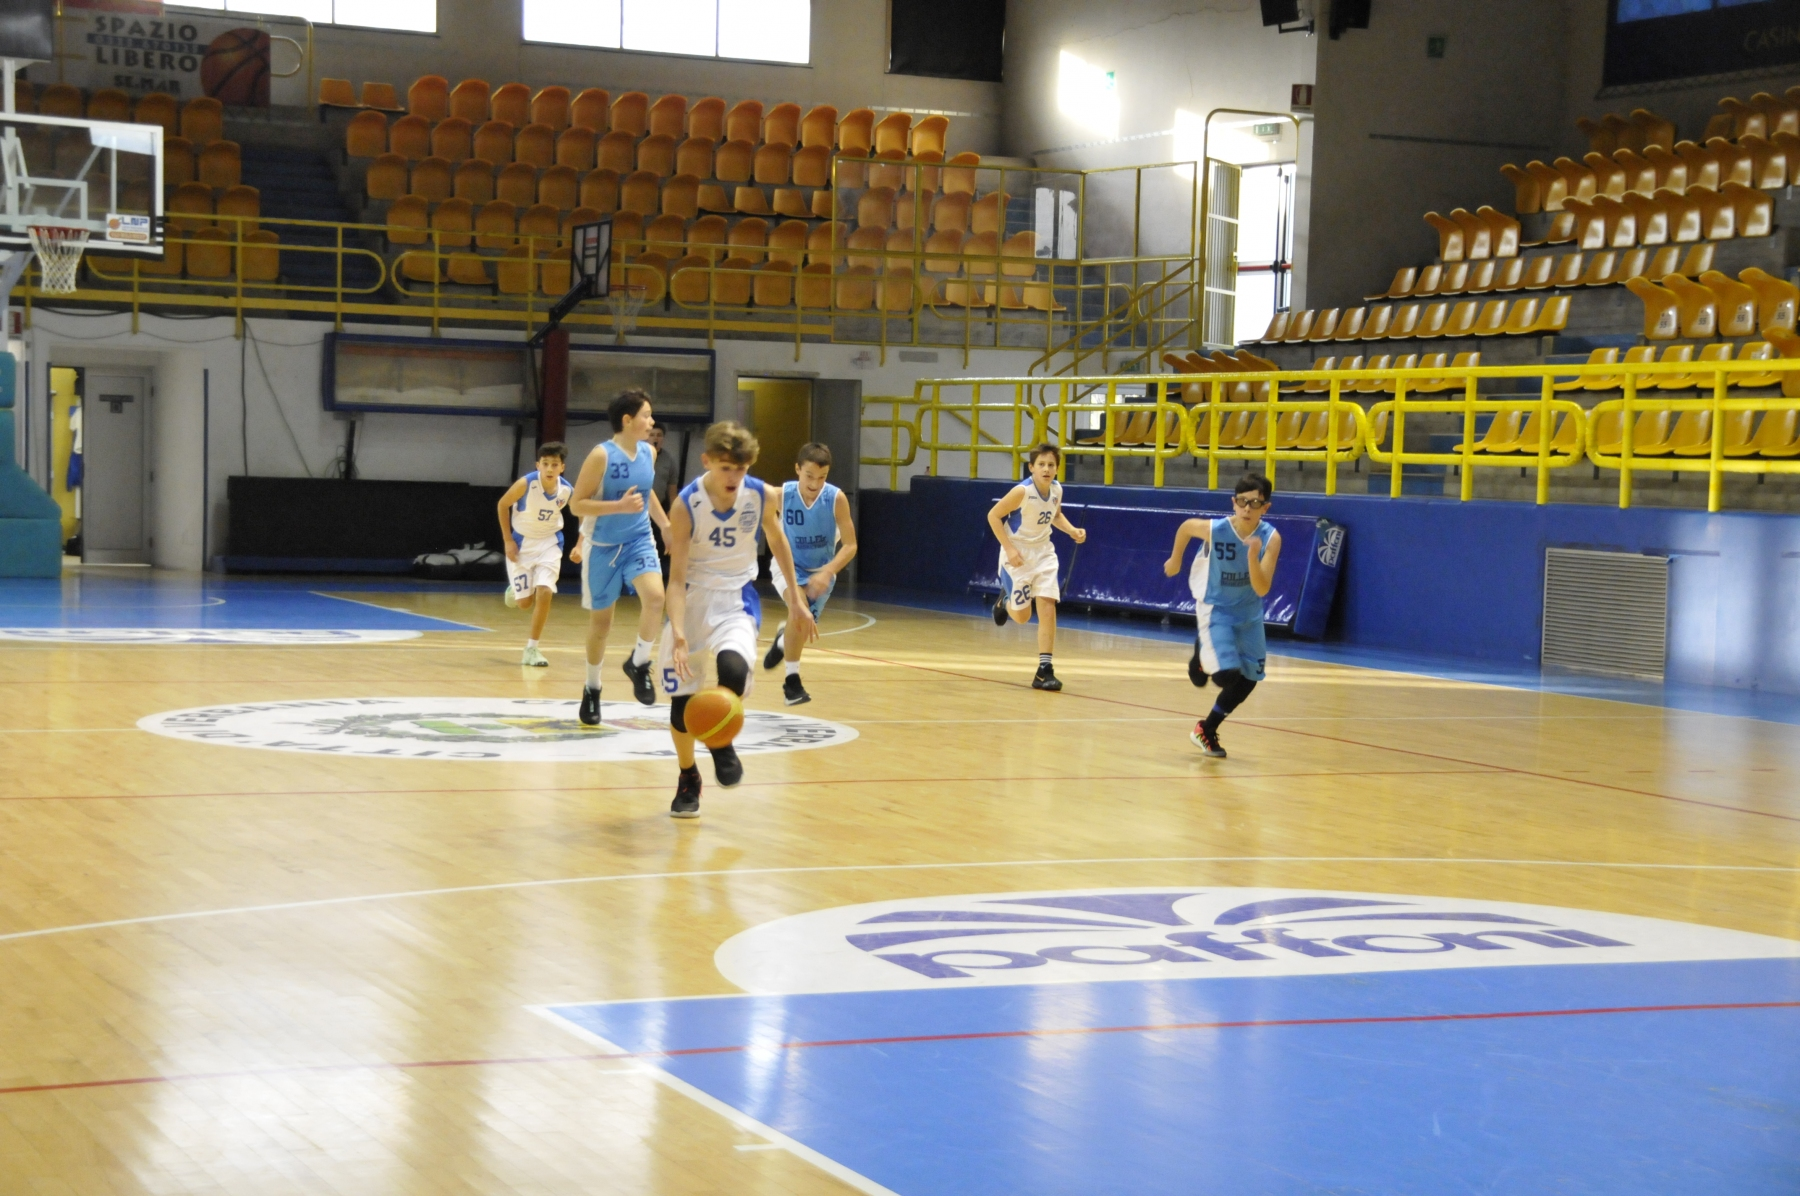 Virtus-College-U13-2020-01-25_039